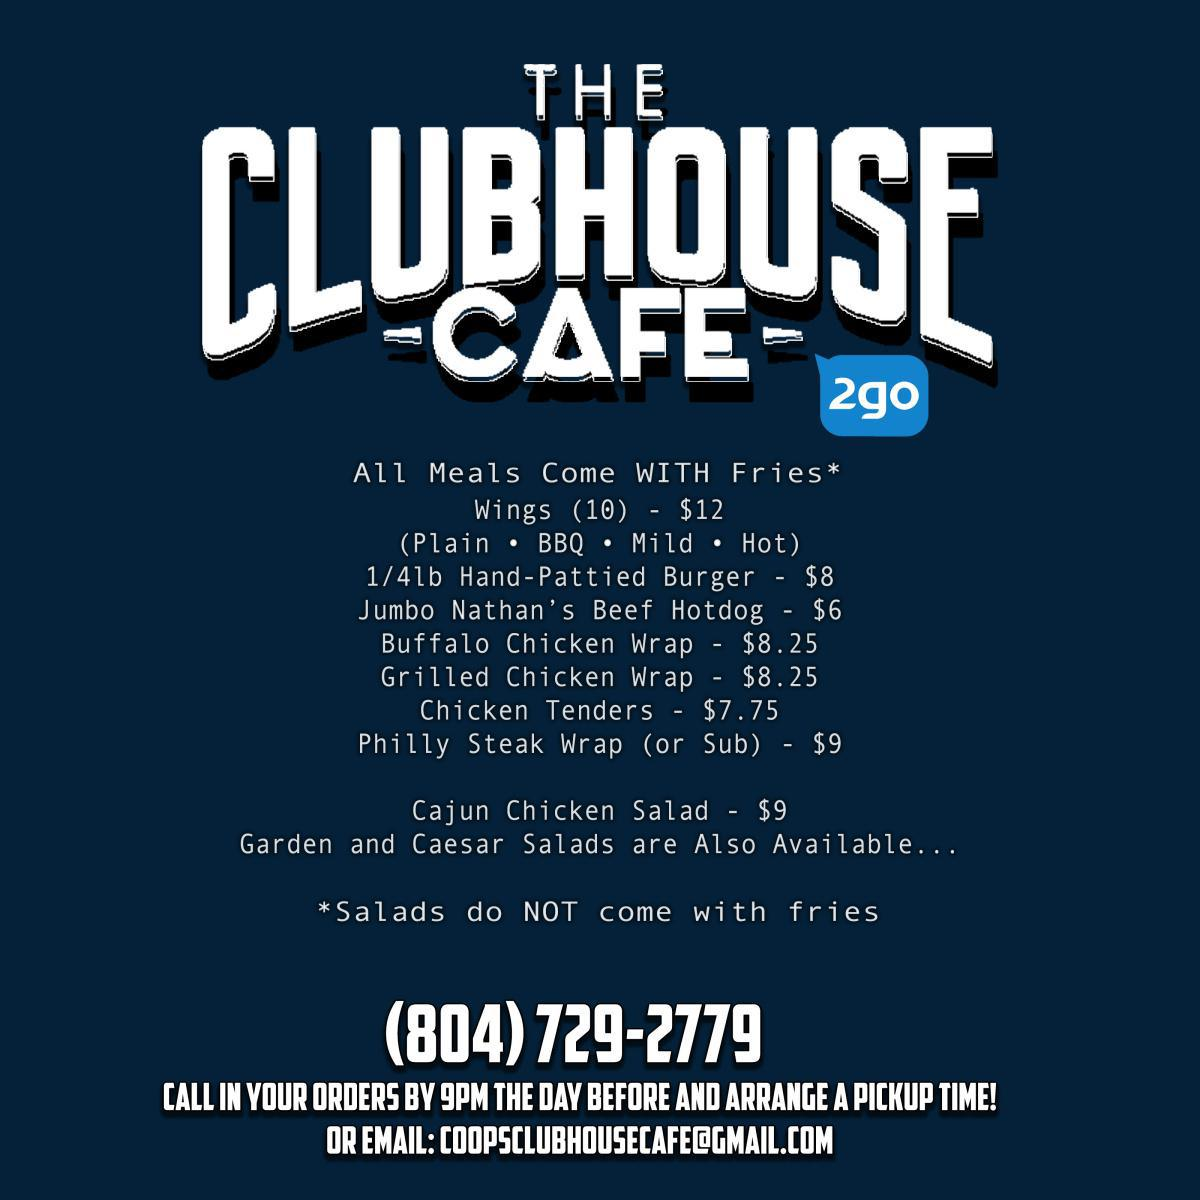 The Clubhouse Cafe 2Go